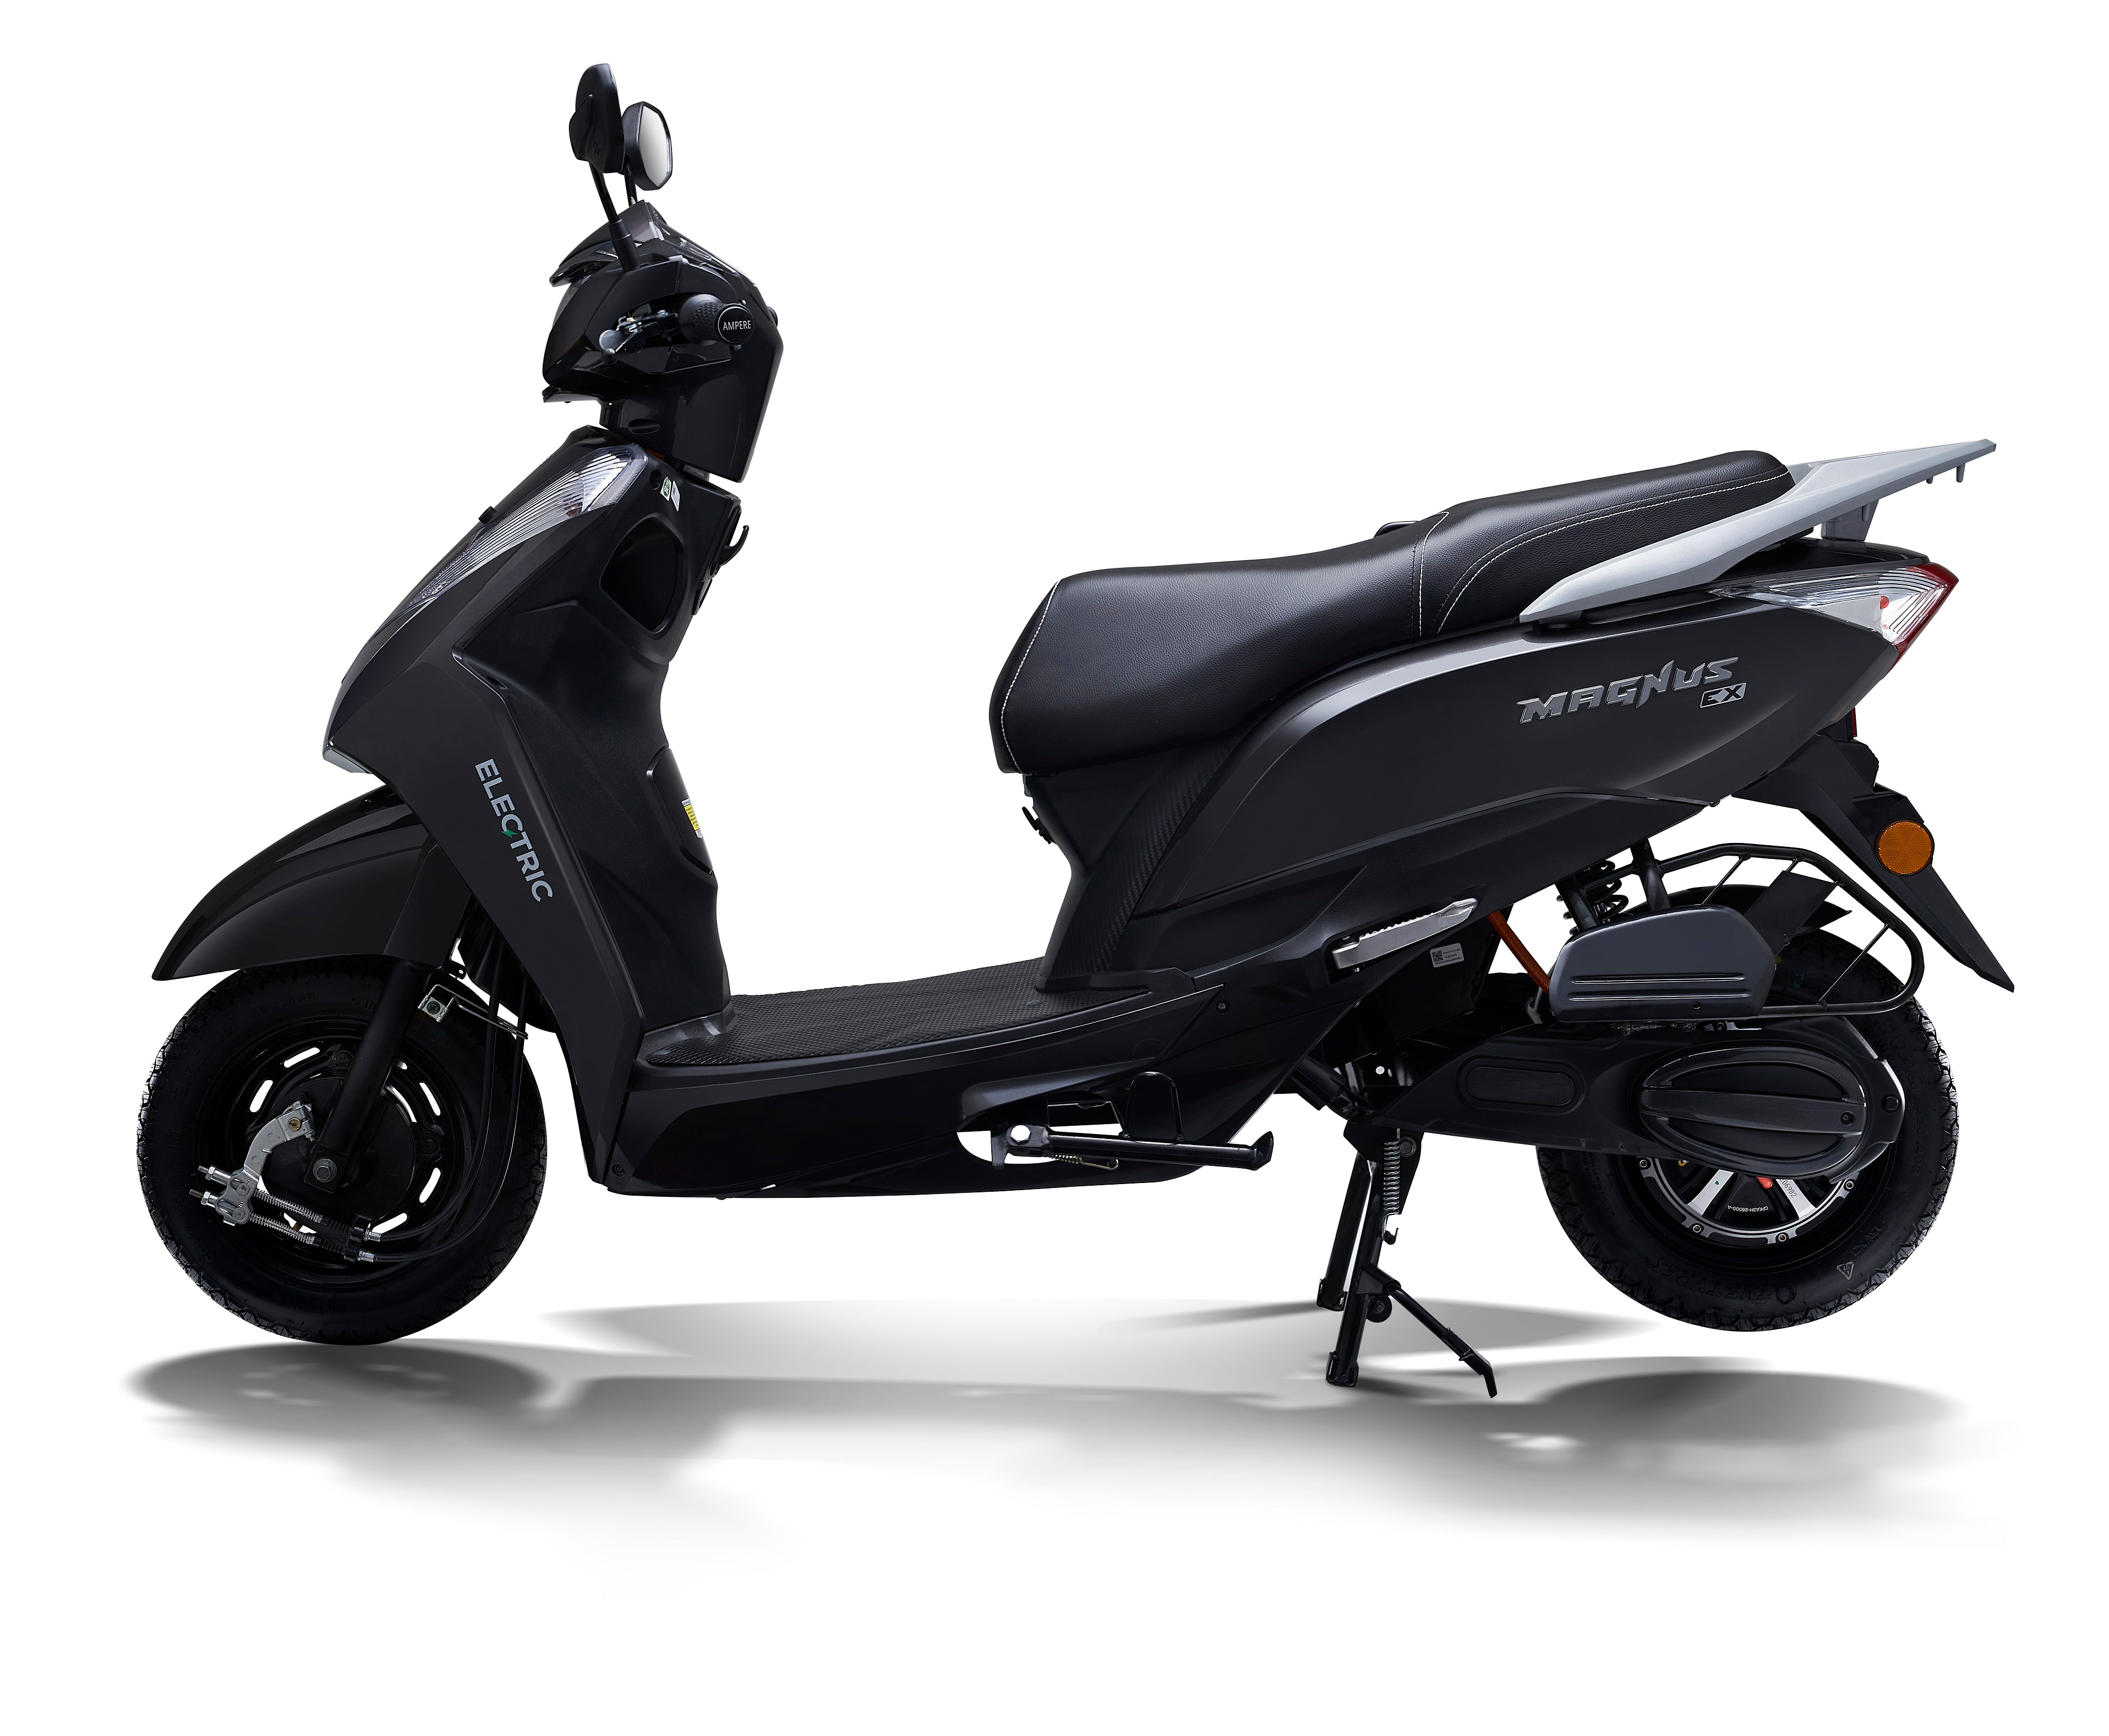 The scooter gets a 1200-Watts motor which comes out as one of the highest-rated motor capacities in this segment. This motor is claimed to propel the engine from 0 to 40 kmph in 10 seconds.